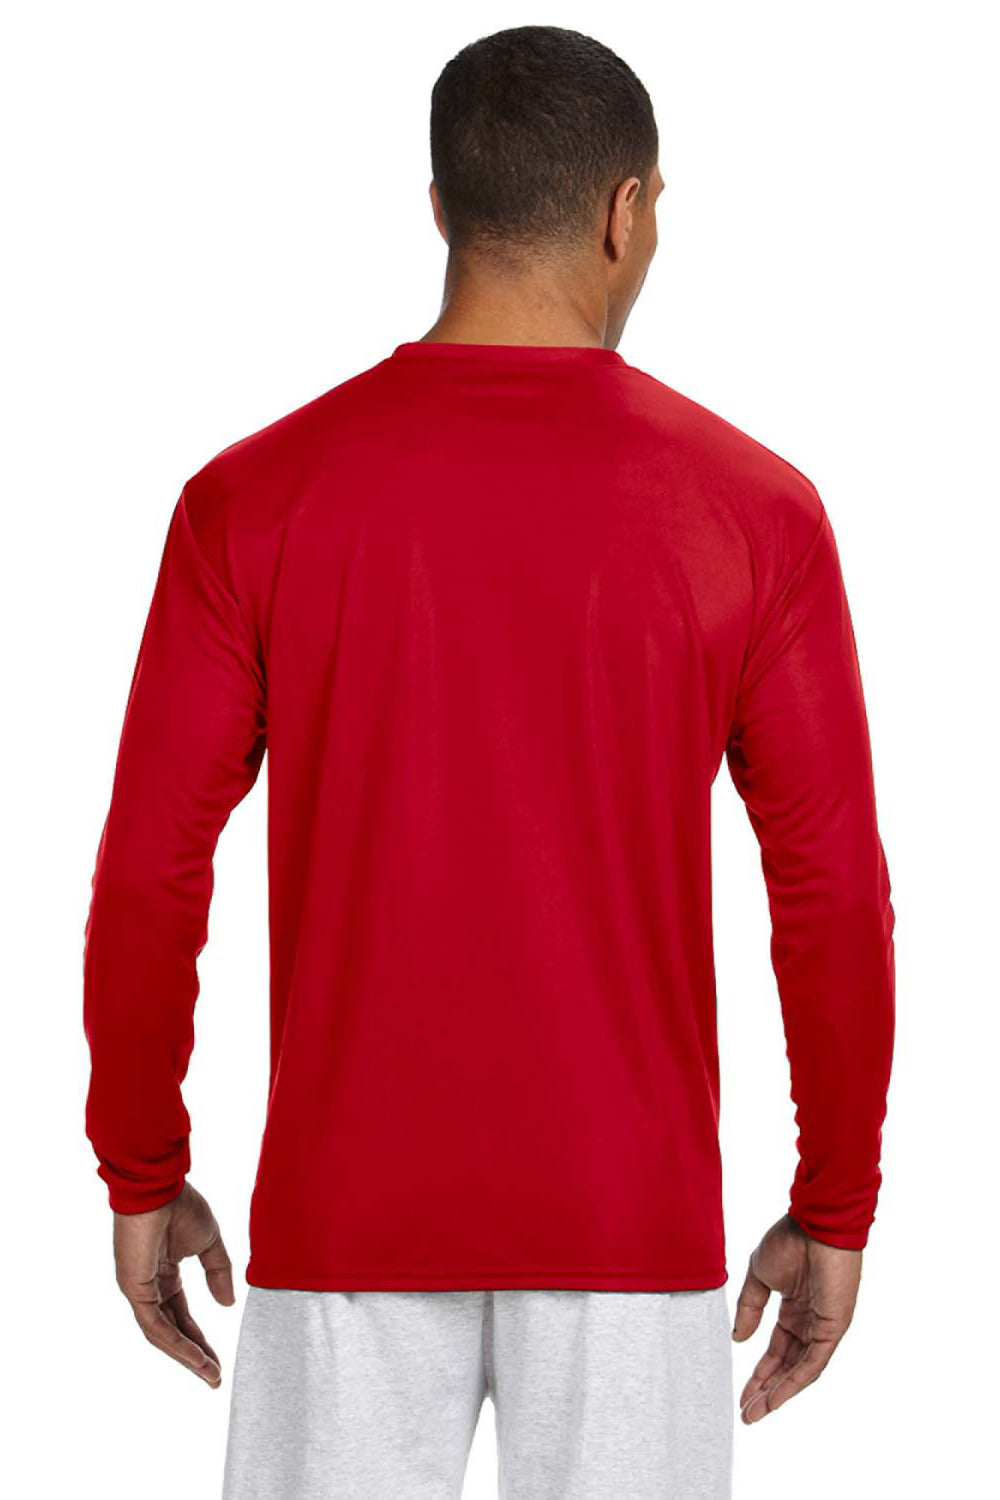 A4 N3165 Mens Cooling Performance Moisture Wicking Long Sleeve Crewneck T-Shirt Red Back